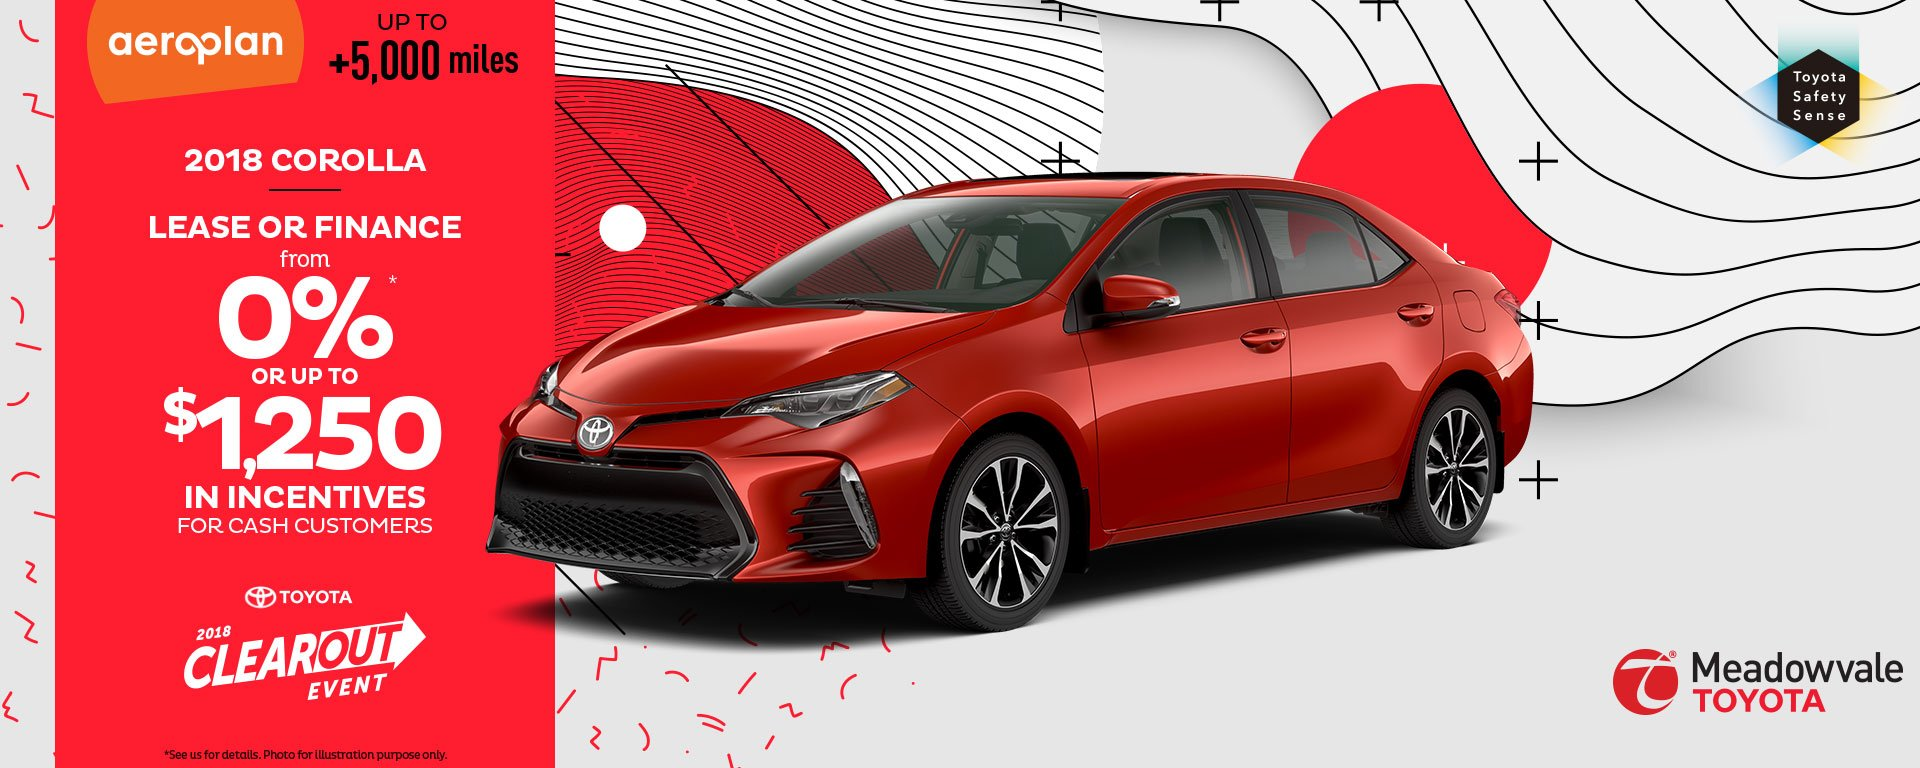 Clearout Event – 2018 Corolla